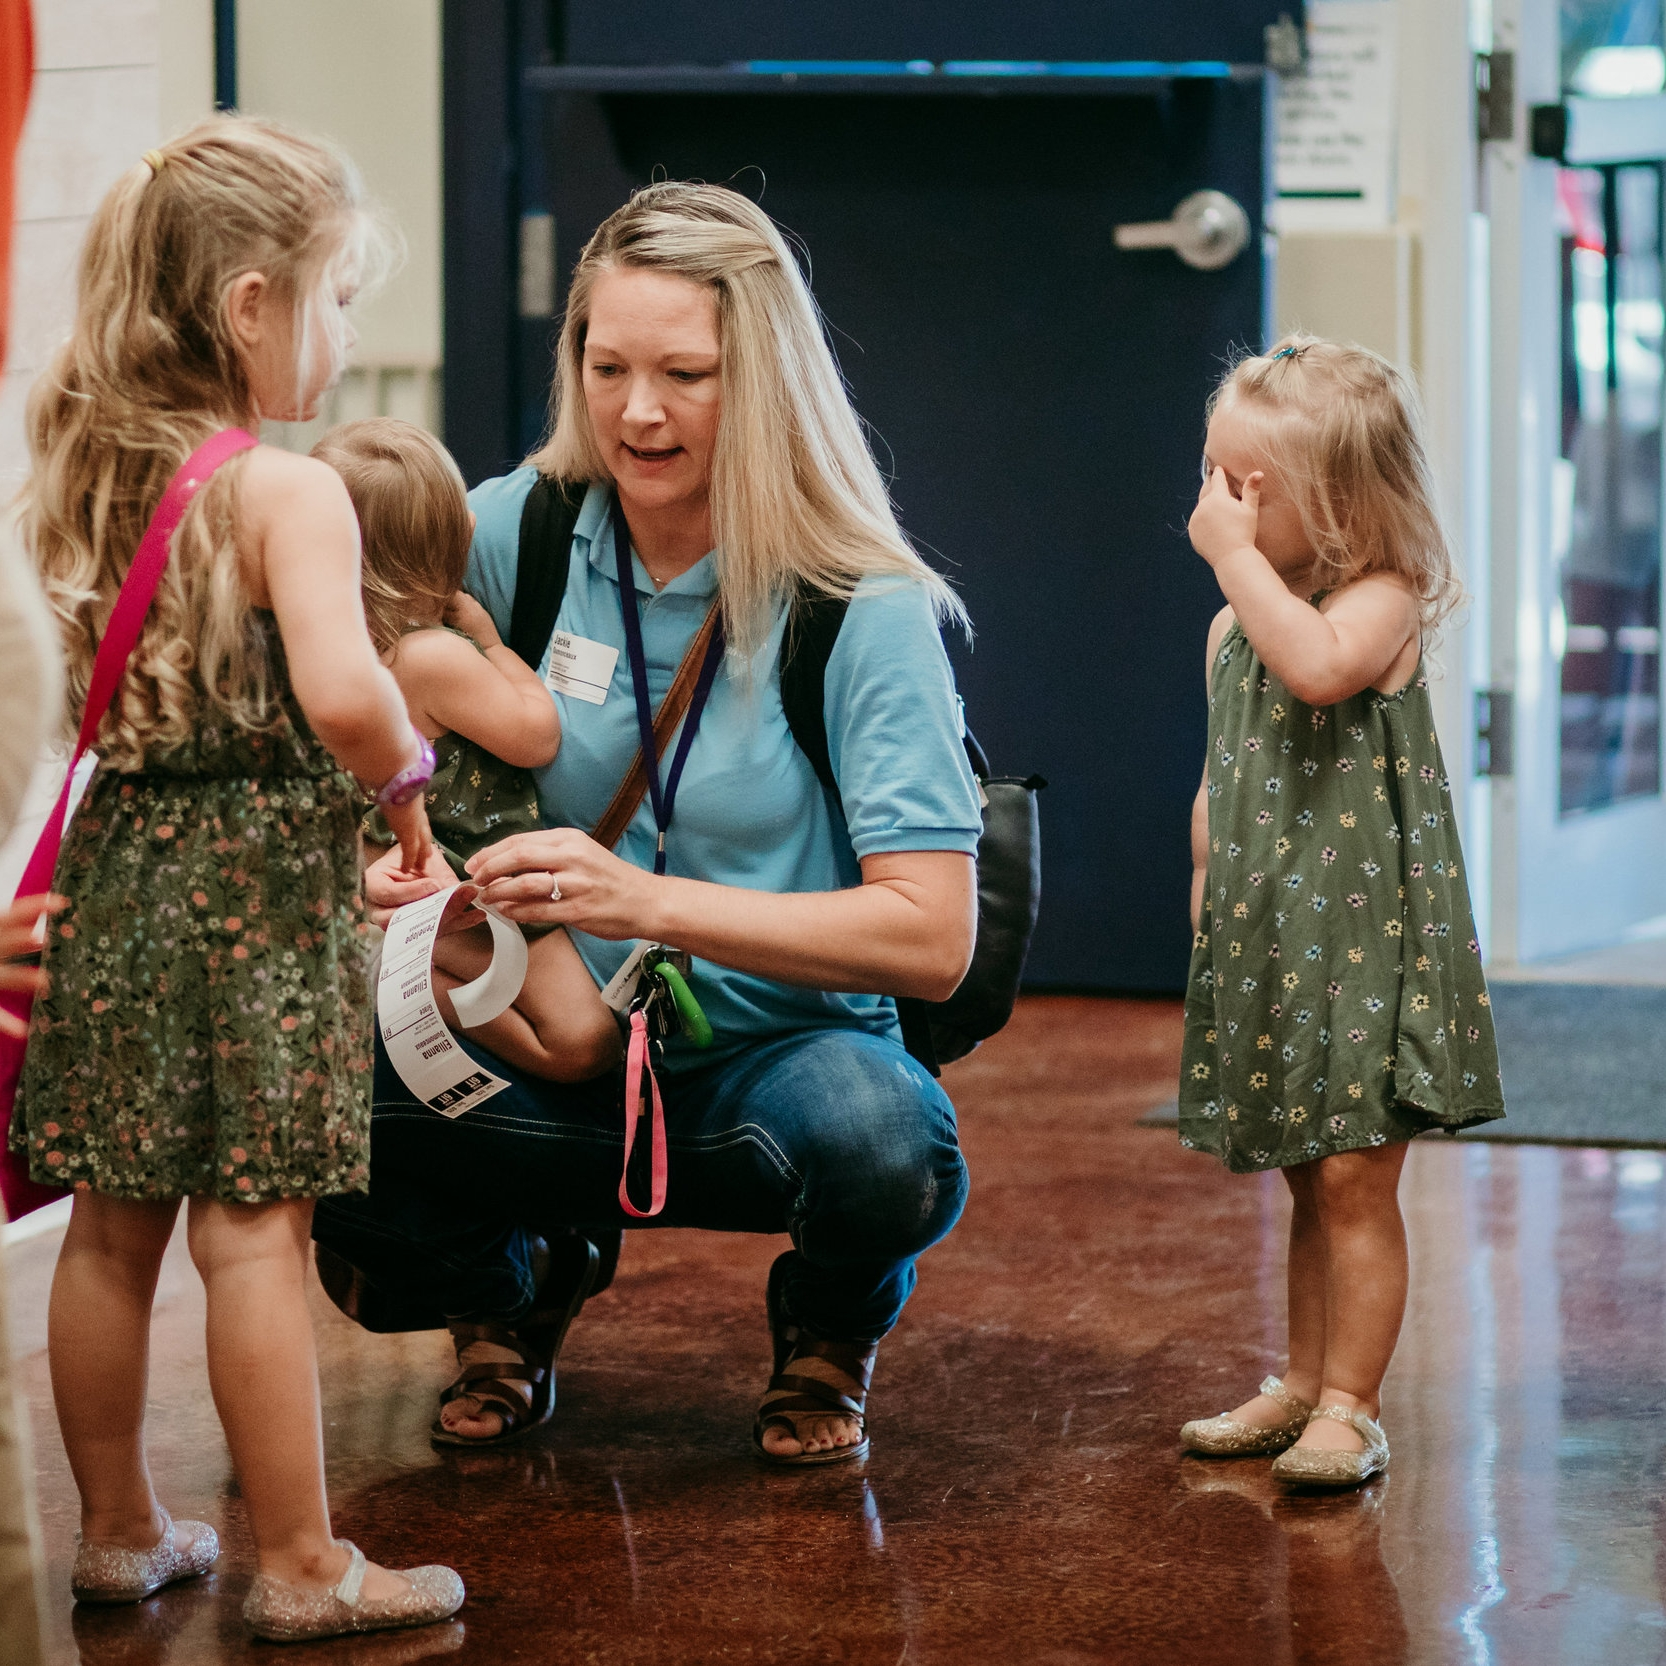 We Love Families! - We offer so many great ways for your family to connect at Calvary! From Preschool & Elementary to Student Ministries, we have something to offer them! If you have no kids, no problem! We also offer fun and engaging groups for singles and married couples.